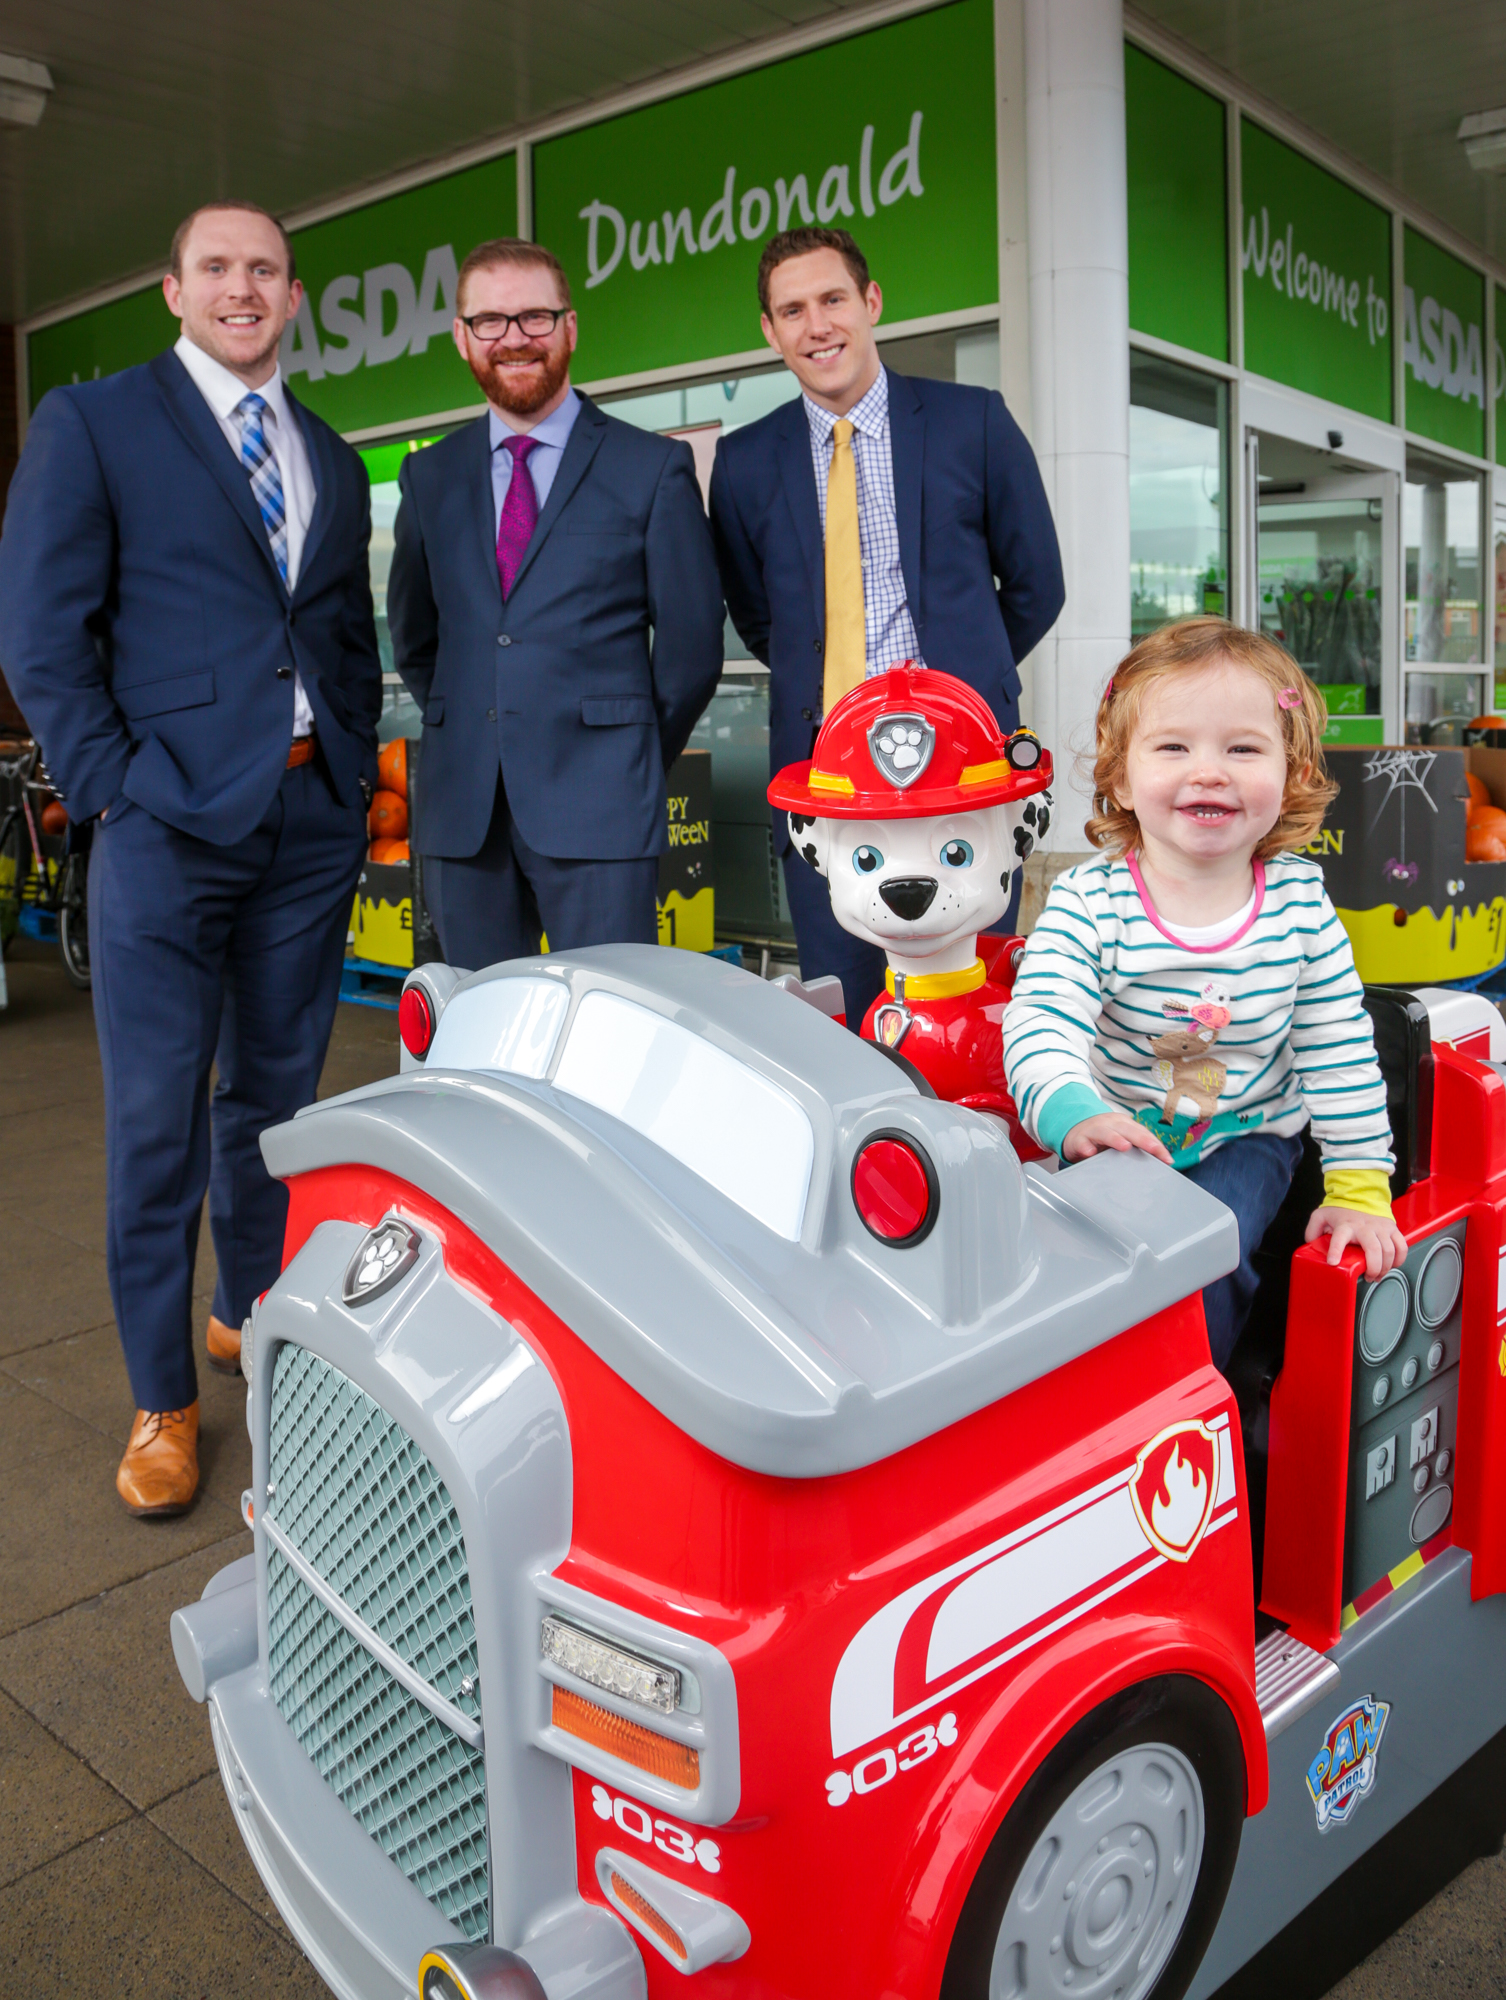 £1.4million Asda Deal For Banbridge Firm Clearhill